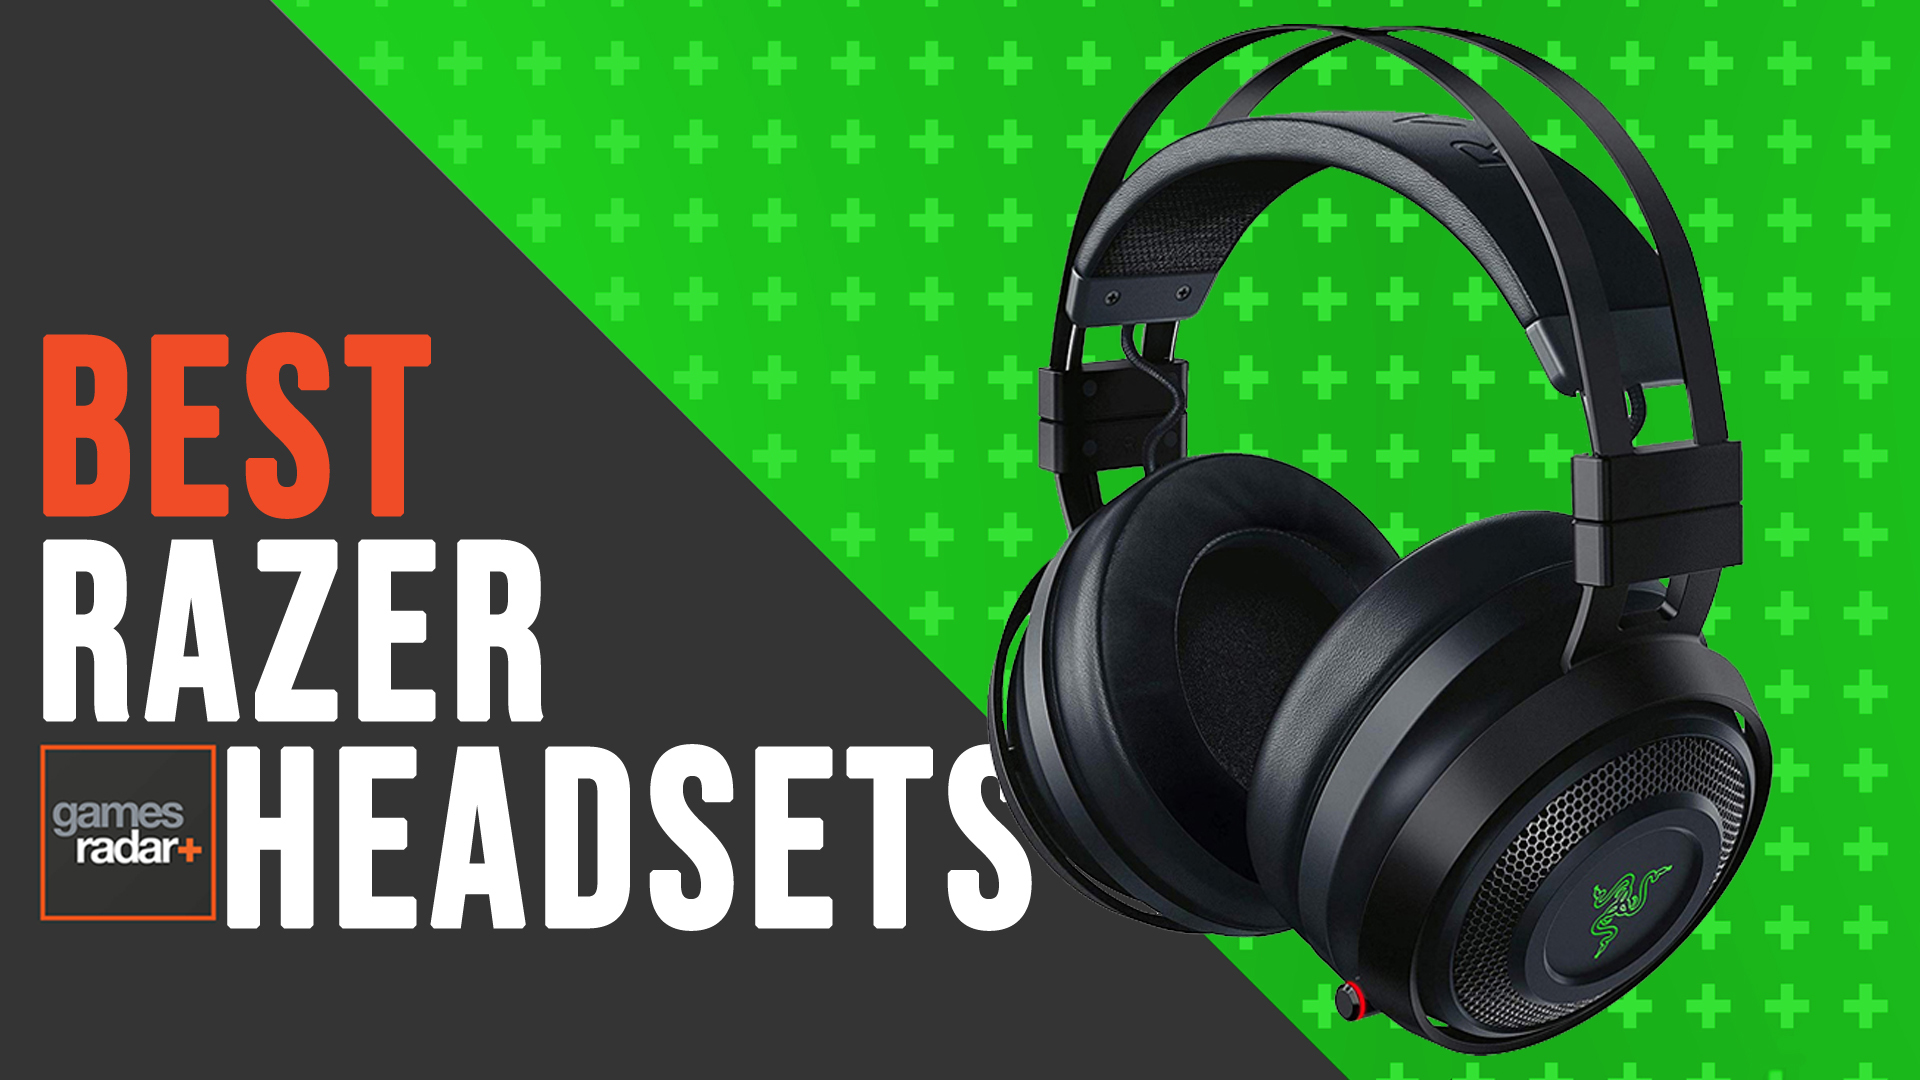 Best Razer Headsets 2021 Our Best Audio Picks From One Of Gaming S Hottest Brands Gamesradar